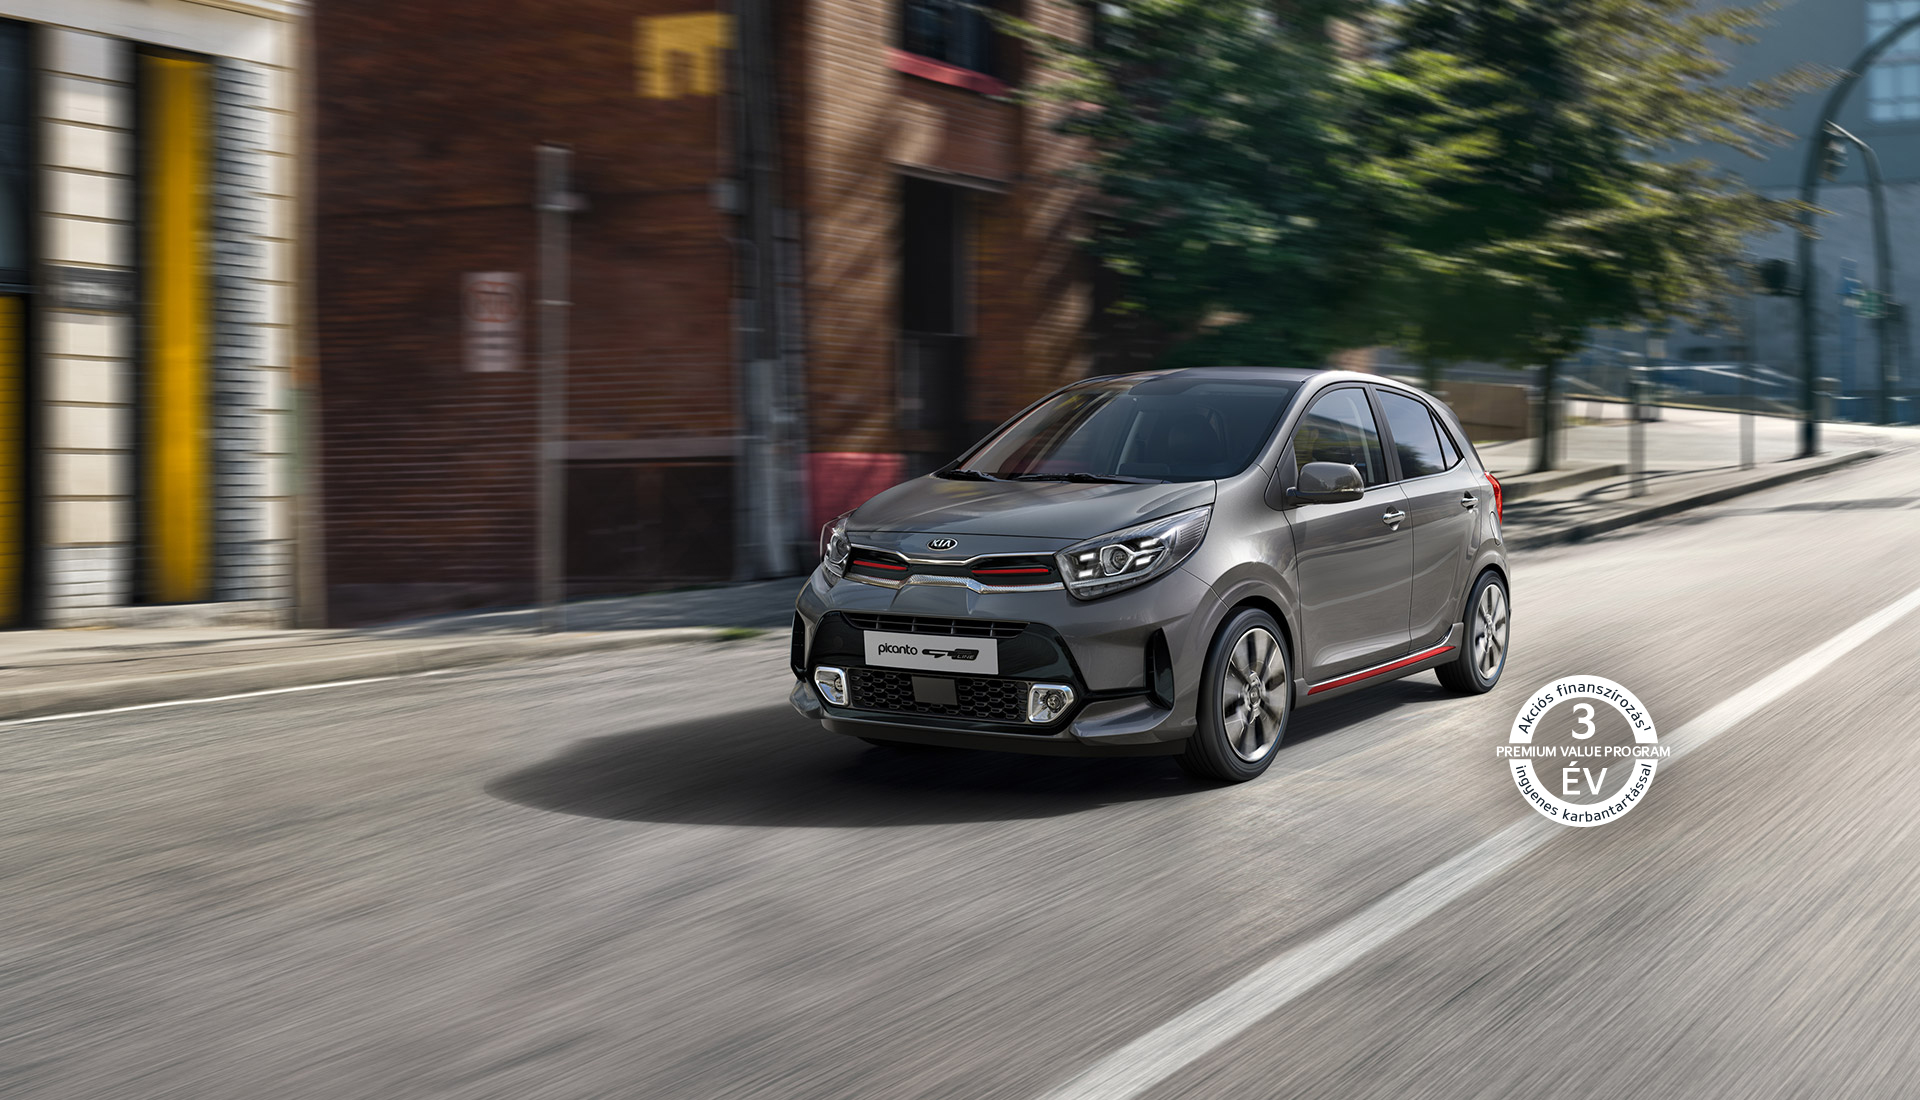 The new Kia Picanto GT Line exterior